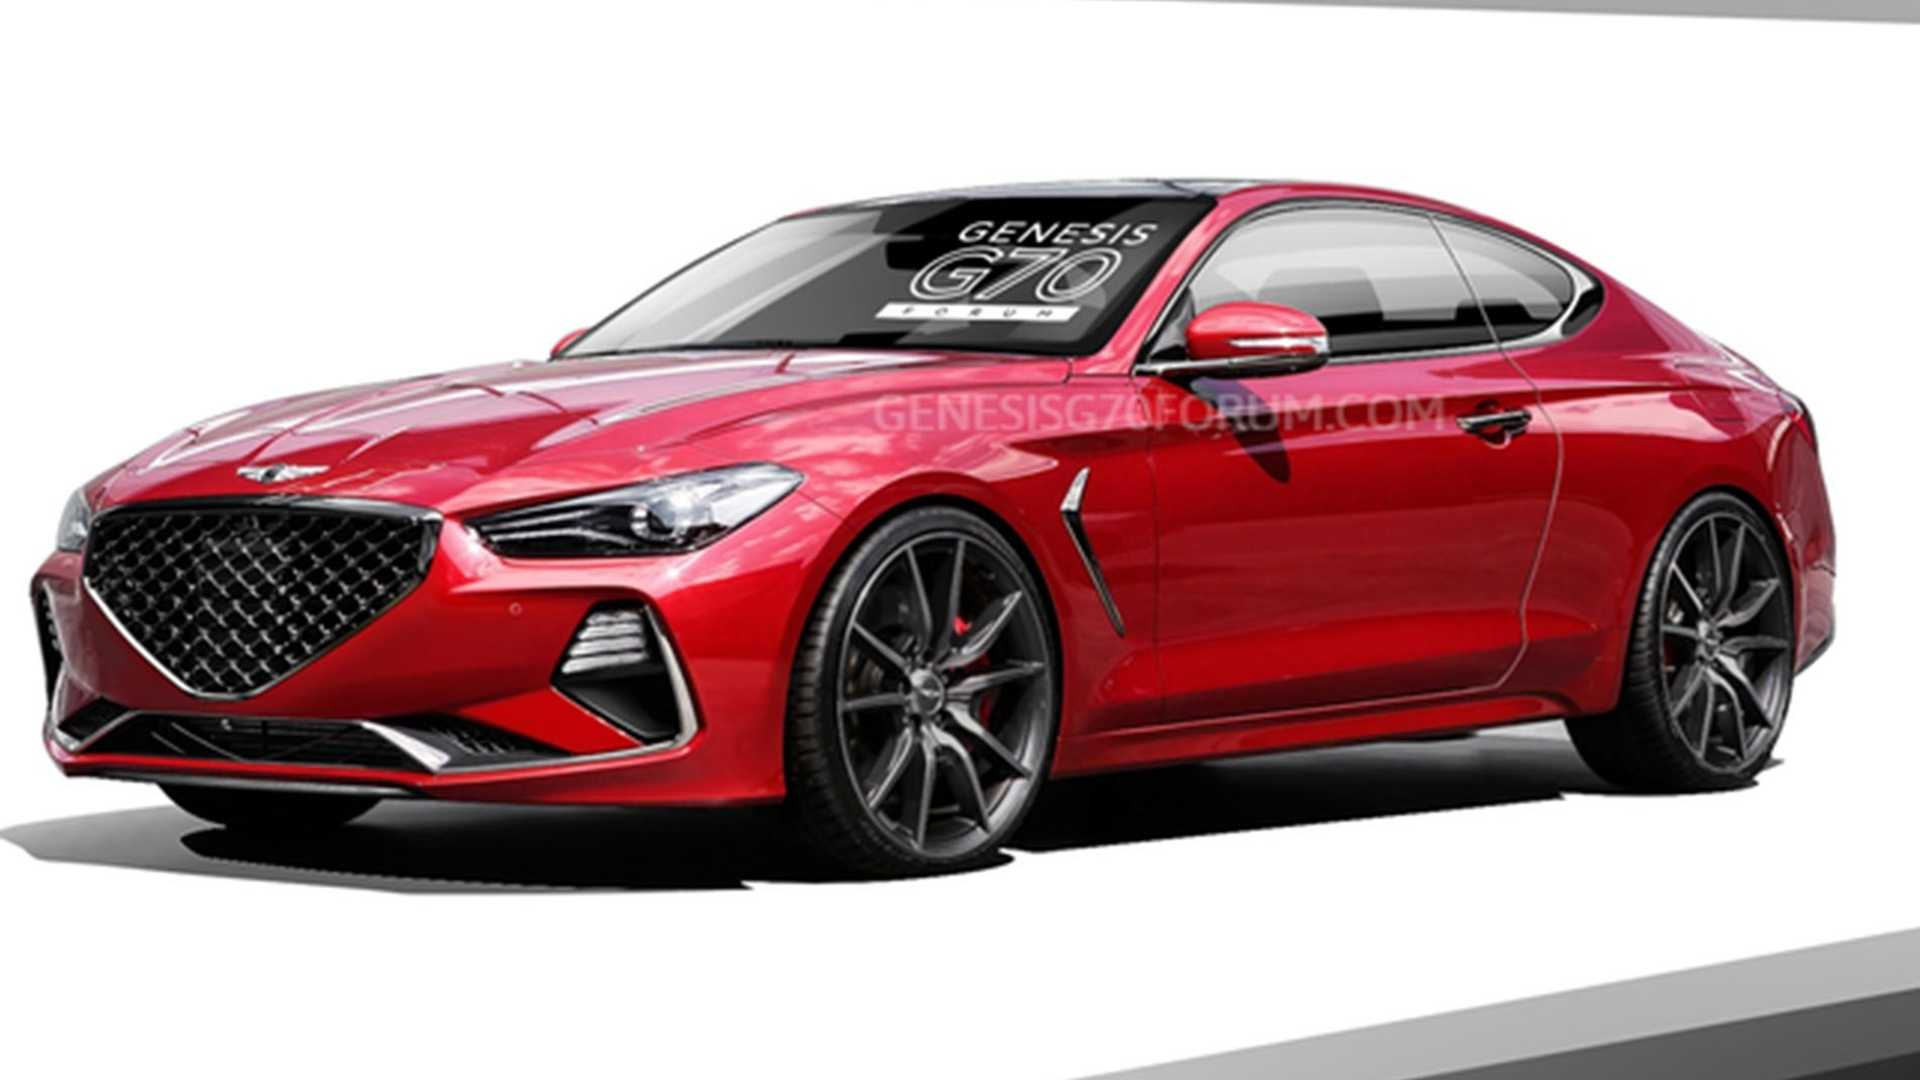 38 Concept of Hyundai Coupe 2020 Price by Hyundai Coupe 2020